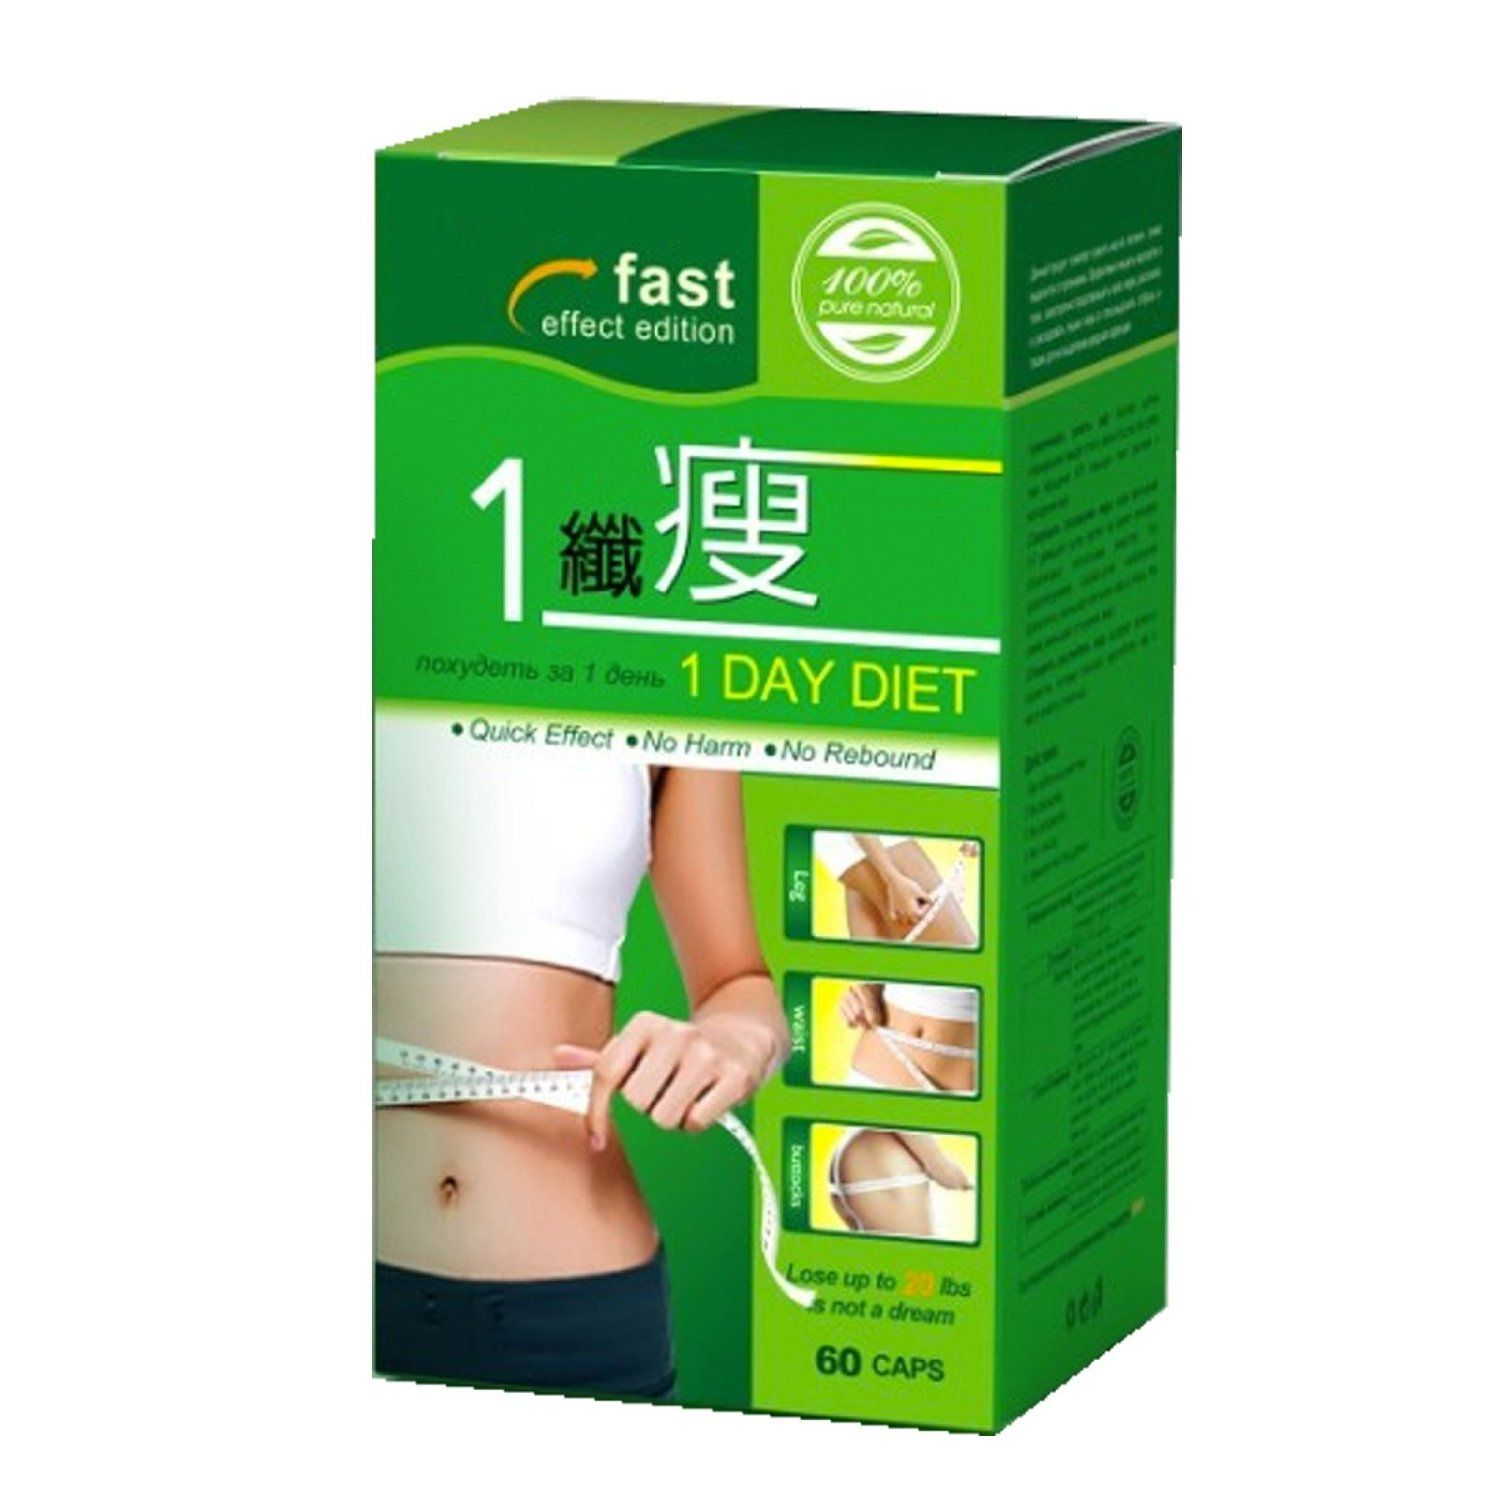 One Day Diet Pills Reviews Diet Lose Weight Fat Burn